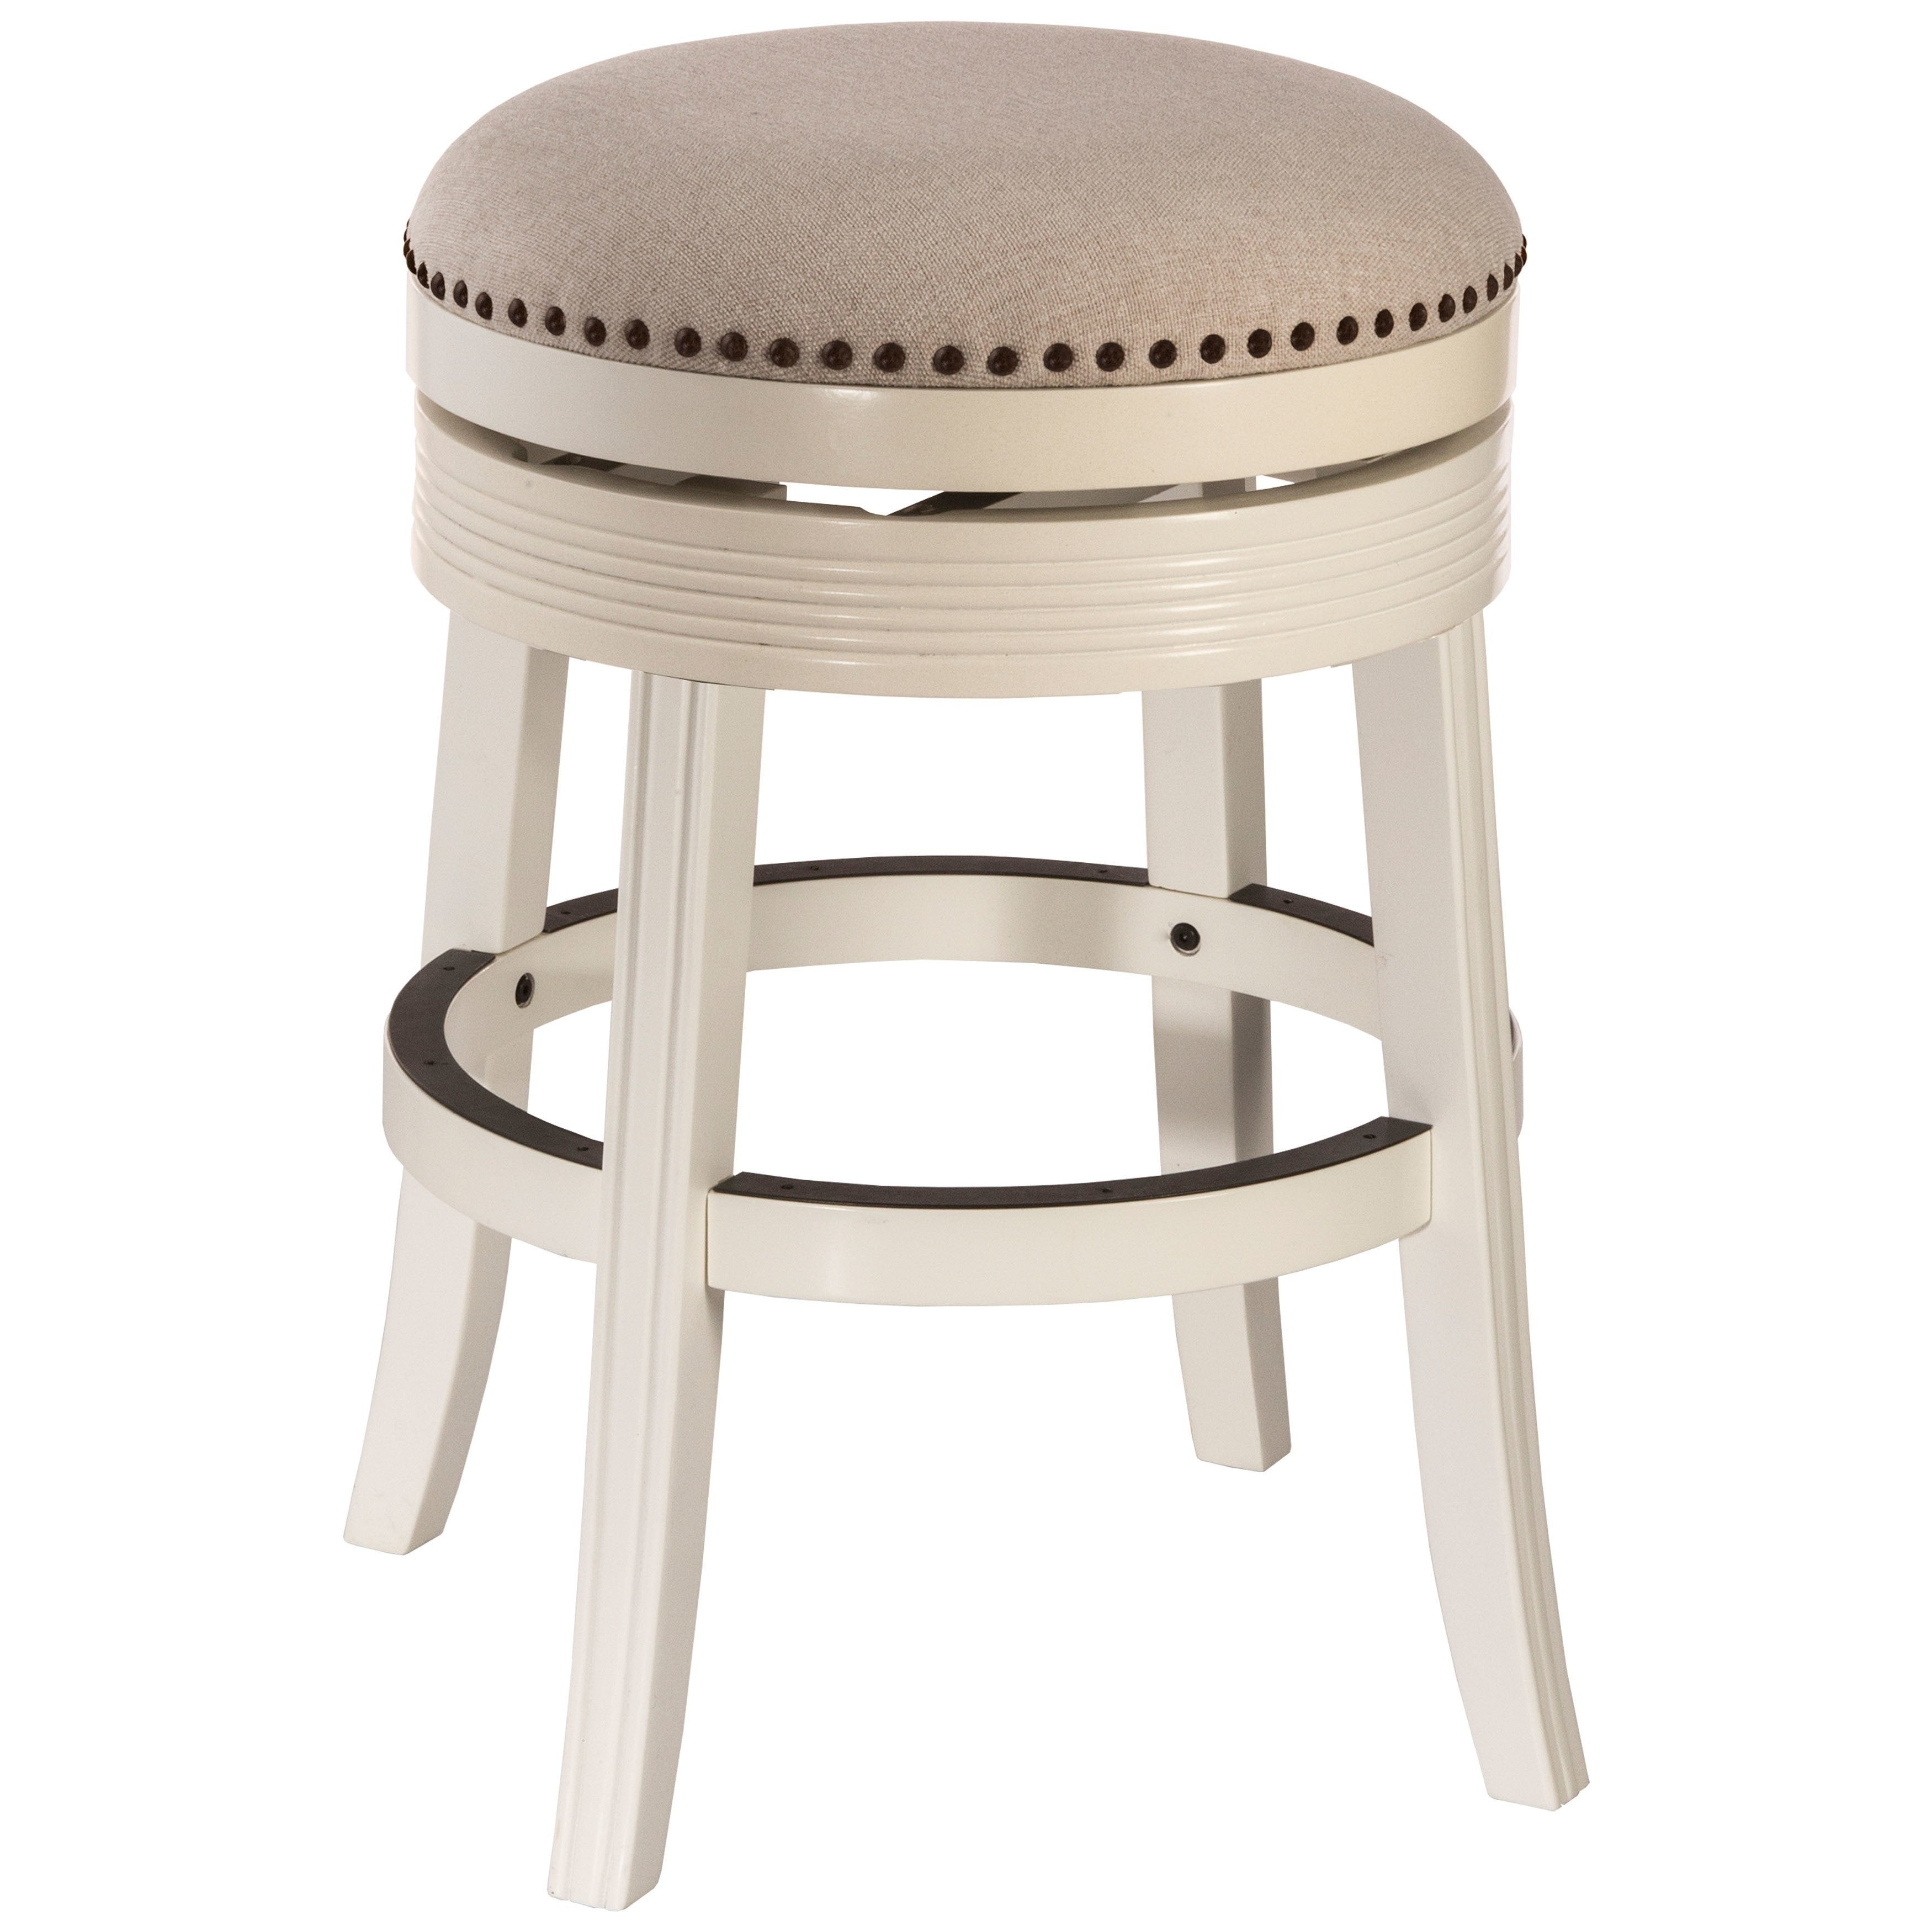 Miraculous Copper Grove Curlew White Wood Backless Swivel Counter Stool Ncnpc Chair Design For Home Ncnpcorg